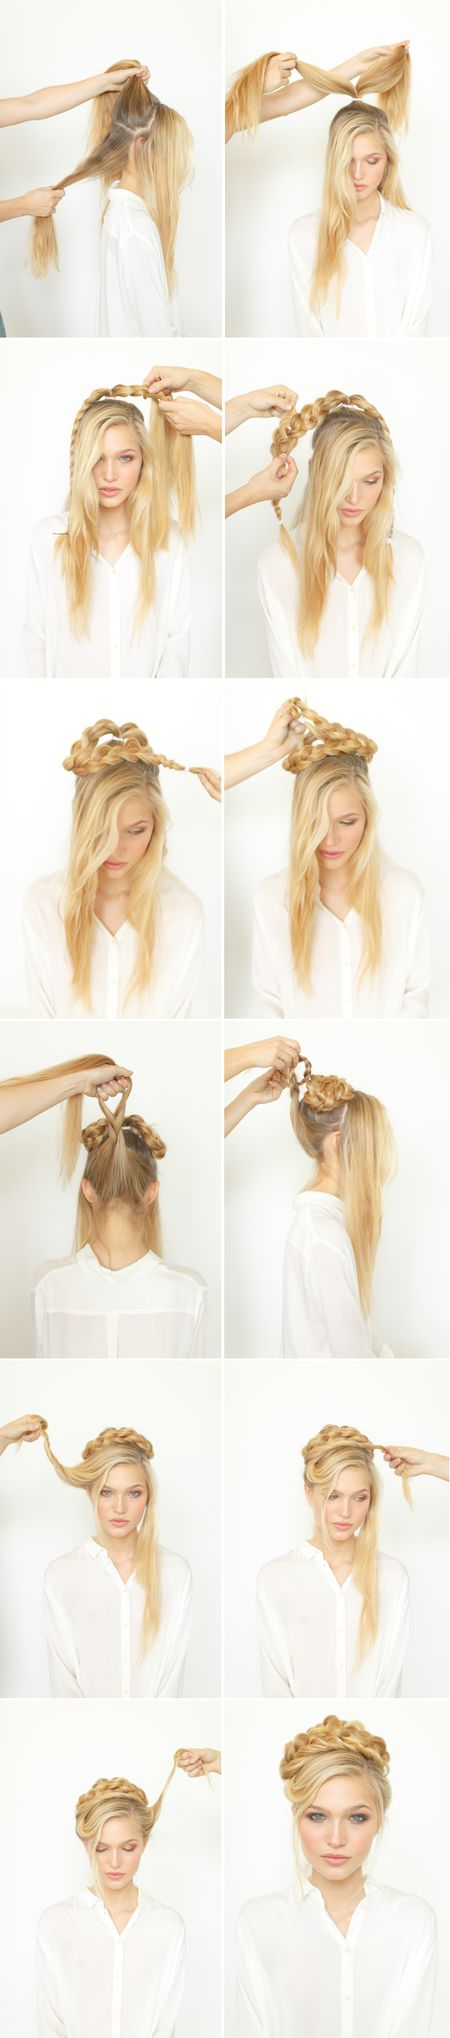 102 best upiecia images on Pinterest | Cute hairstyles, Hair makeup ...